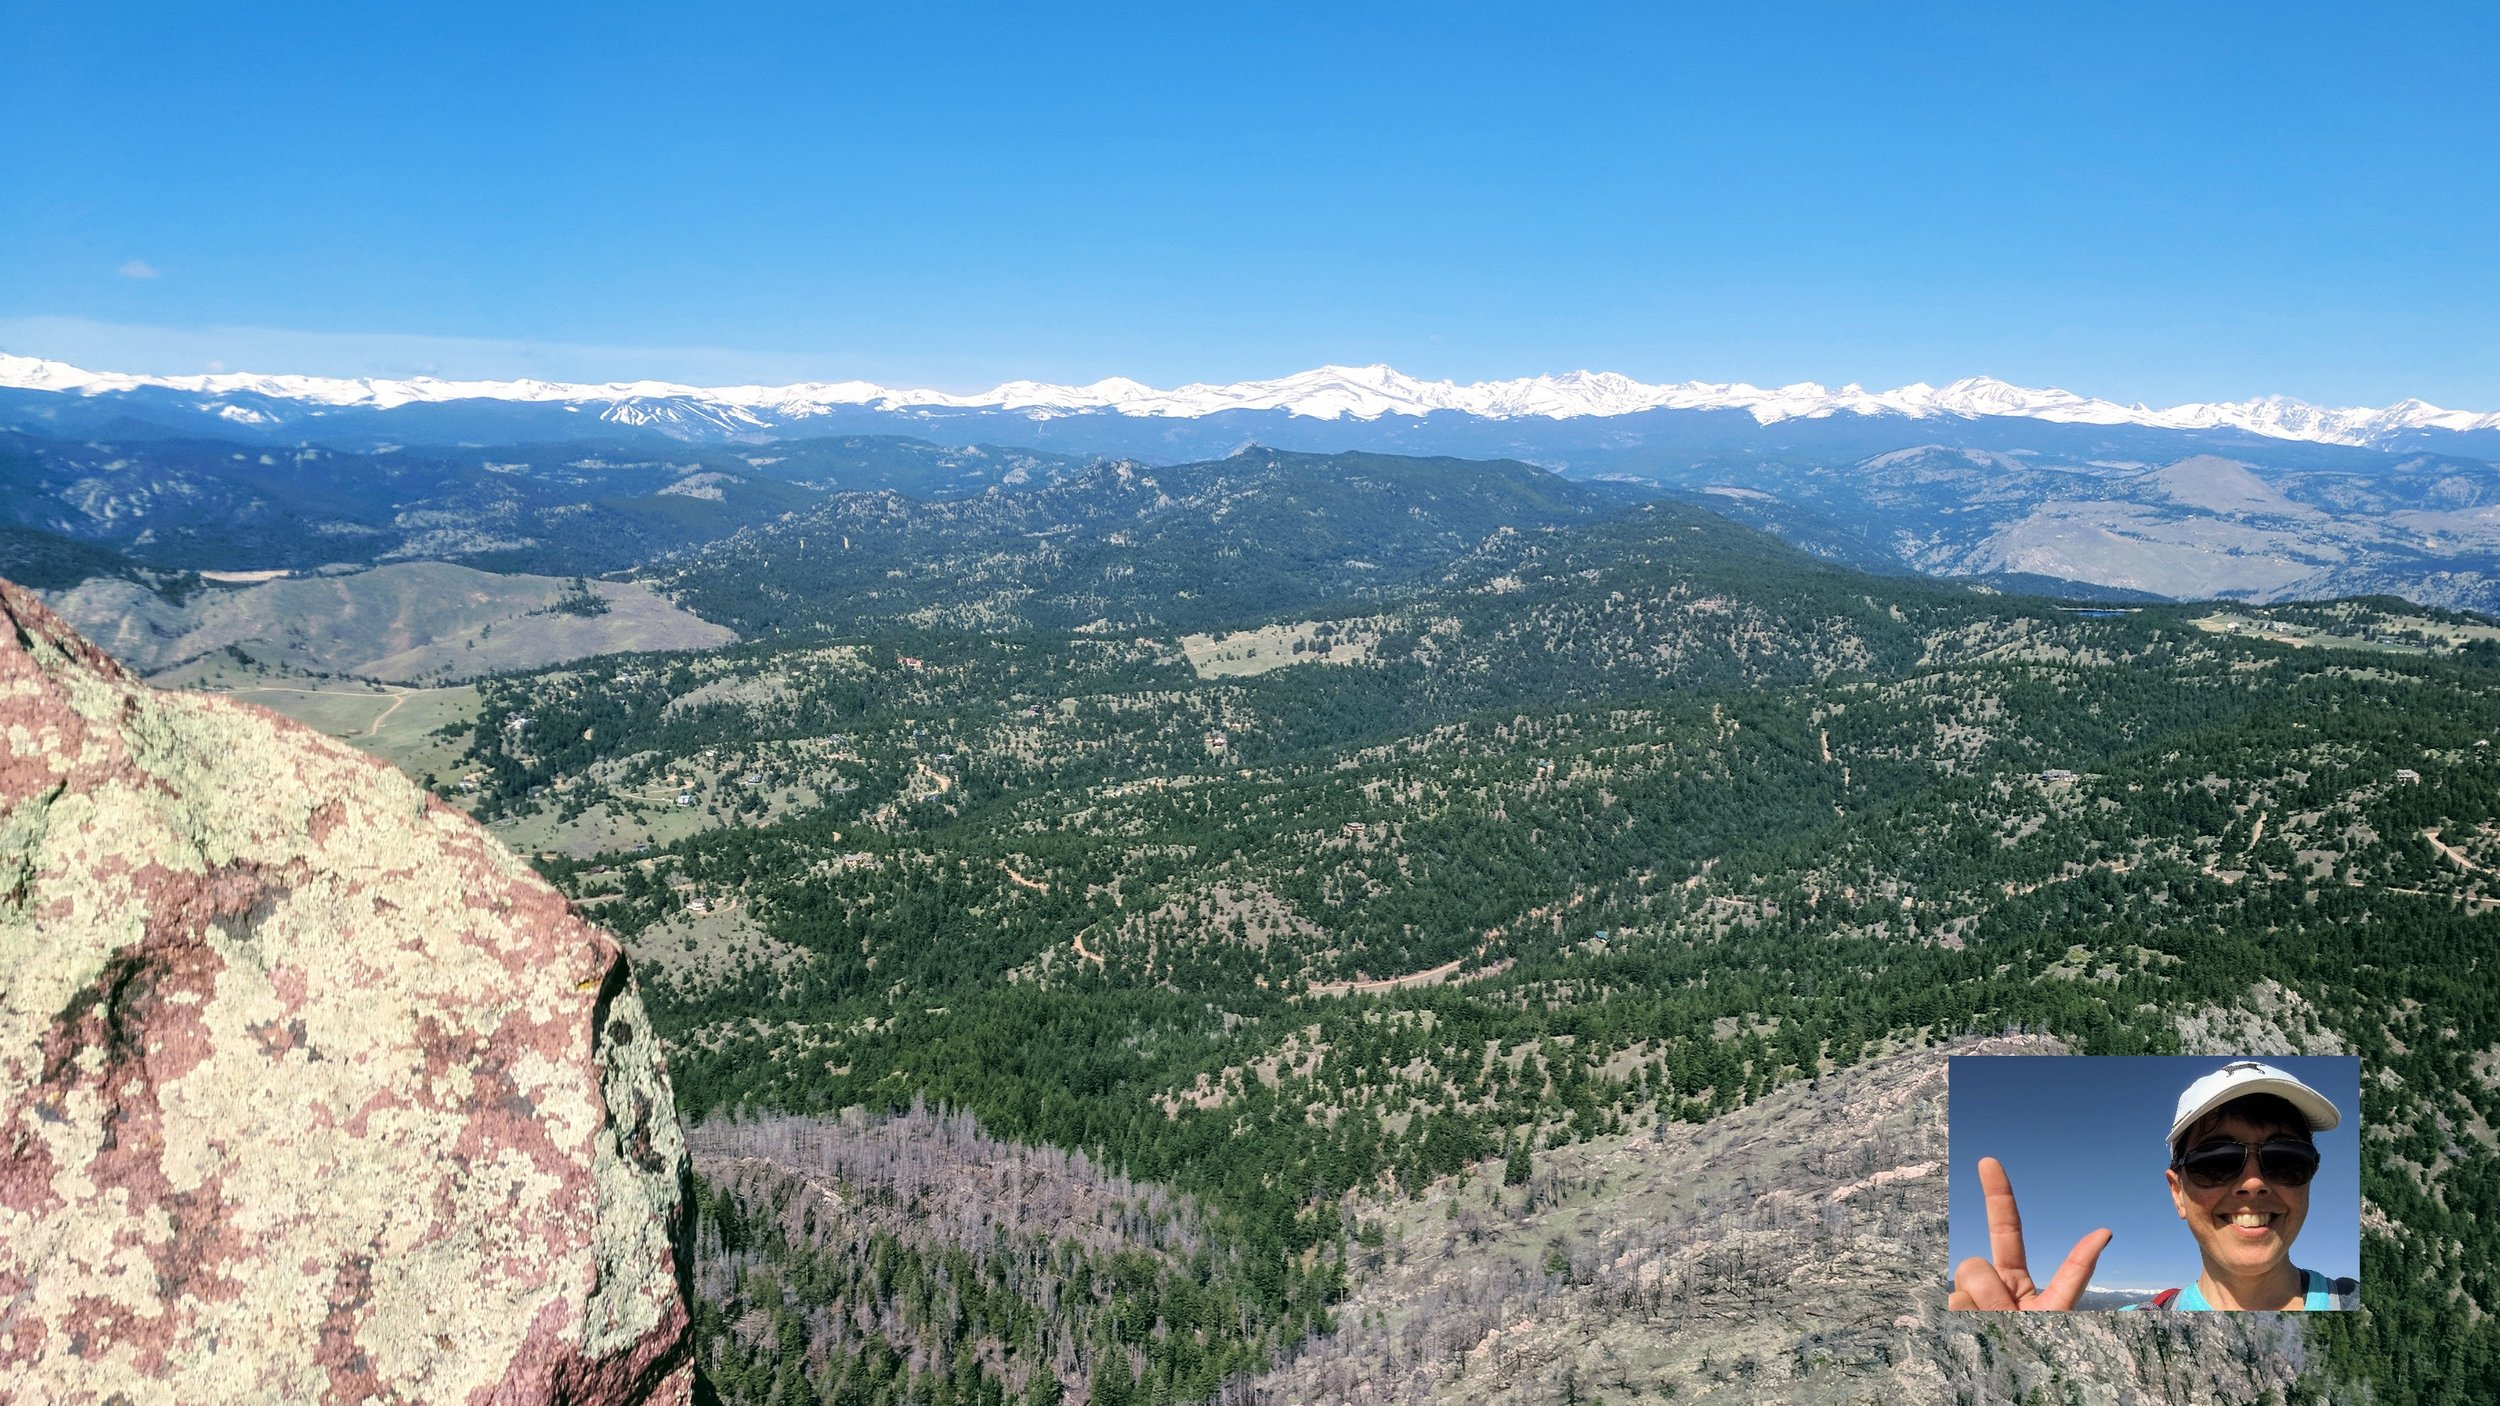 Two down, three to go! Another great view from Bear's summit, this time west toward the Continental Divide.